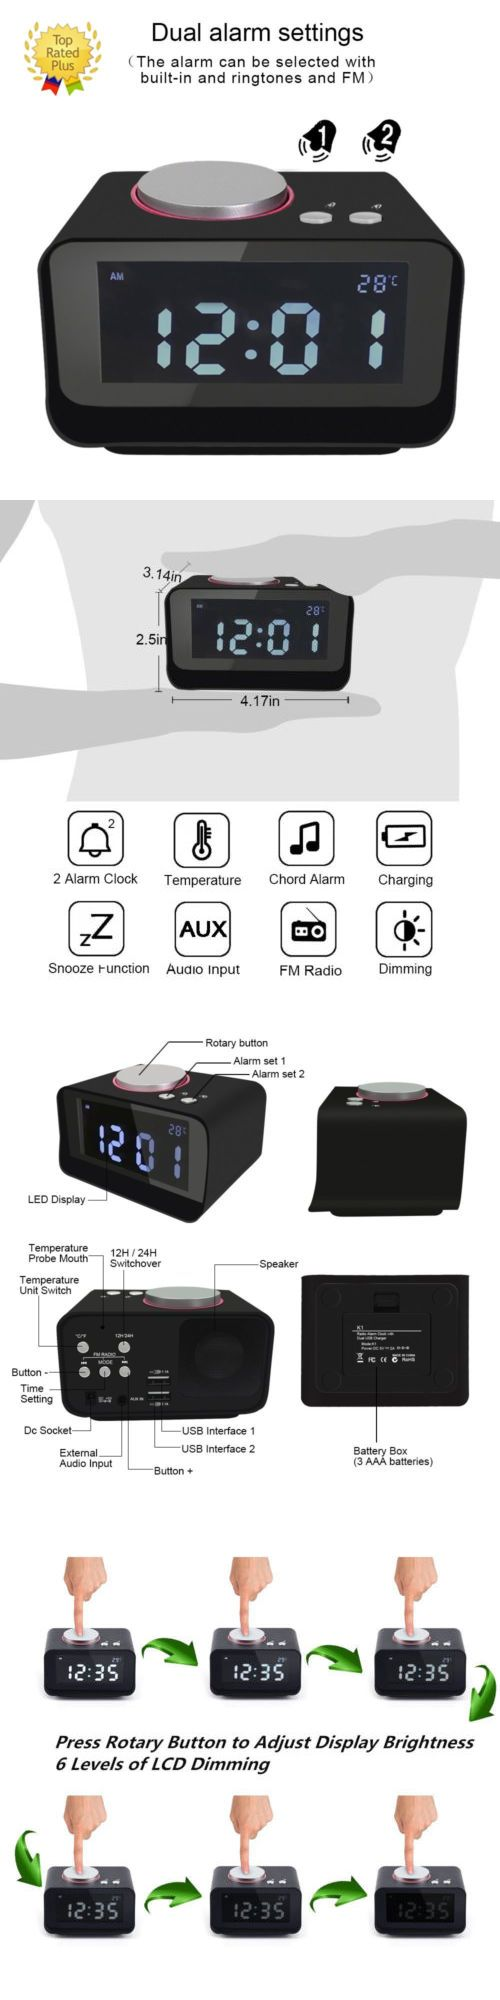 Digital Clocks and Clock Radios: Dual Alarm Clock Fm Radio Usb Charging Brightness Dimmer Sleep Timer Us Shipping -> BUY IT NOW ONLY: $32.99 on eBay!